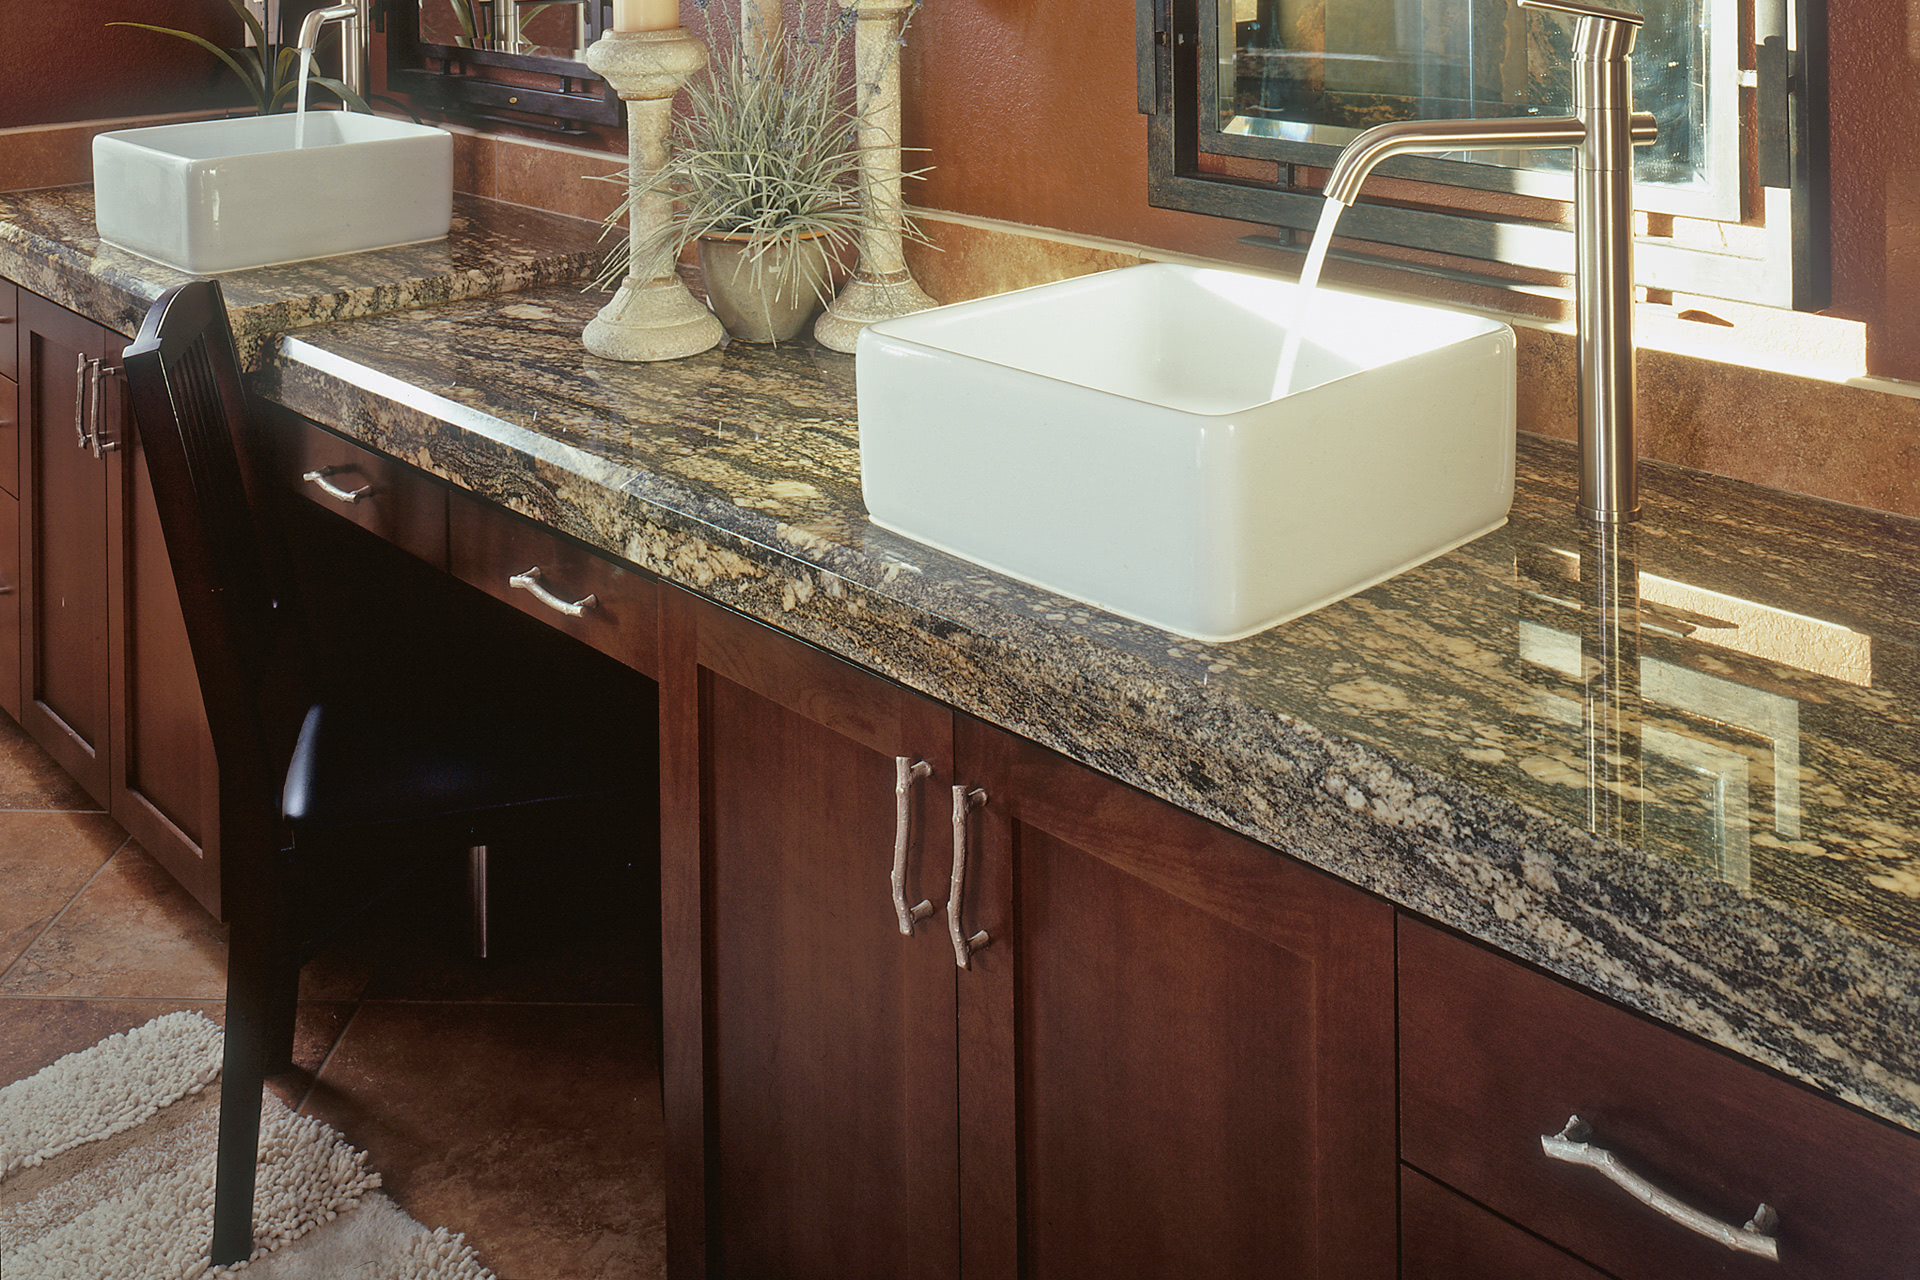 Custom Bathroom Cabinets - Curved Face Sinks Two Level Vessel Sinks